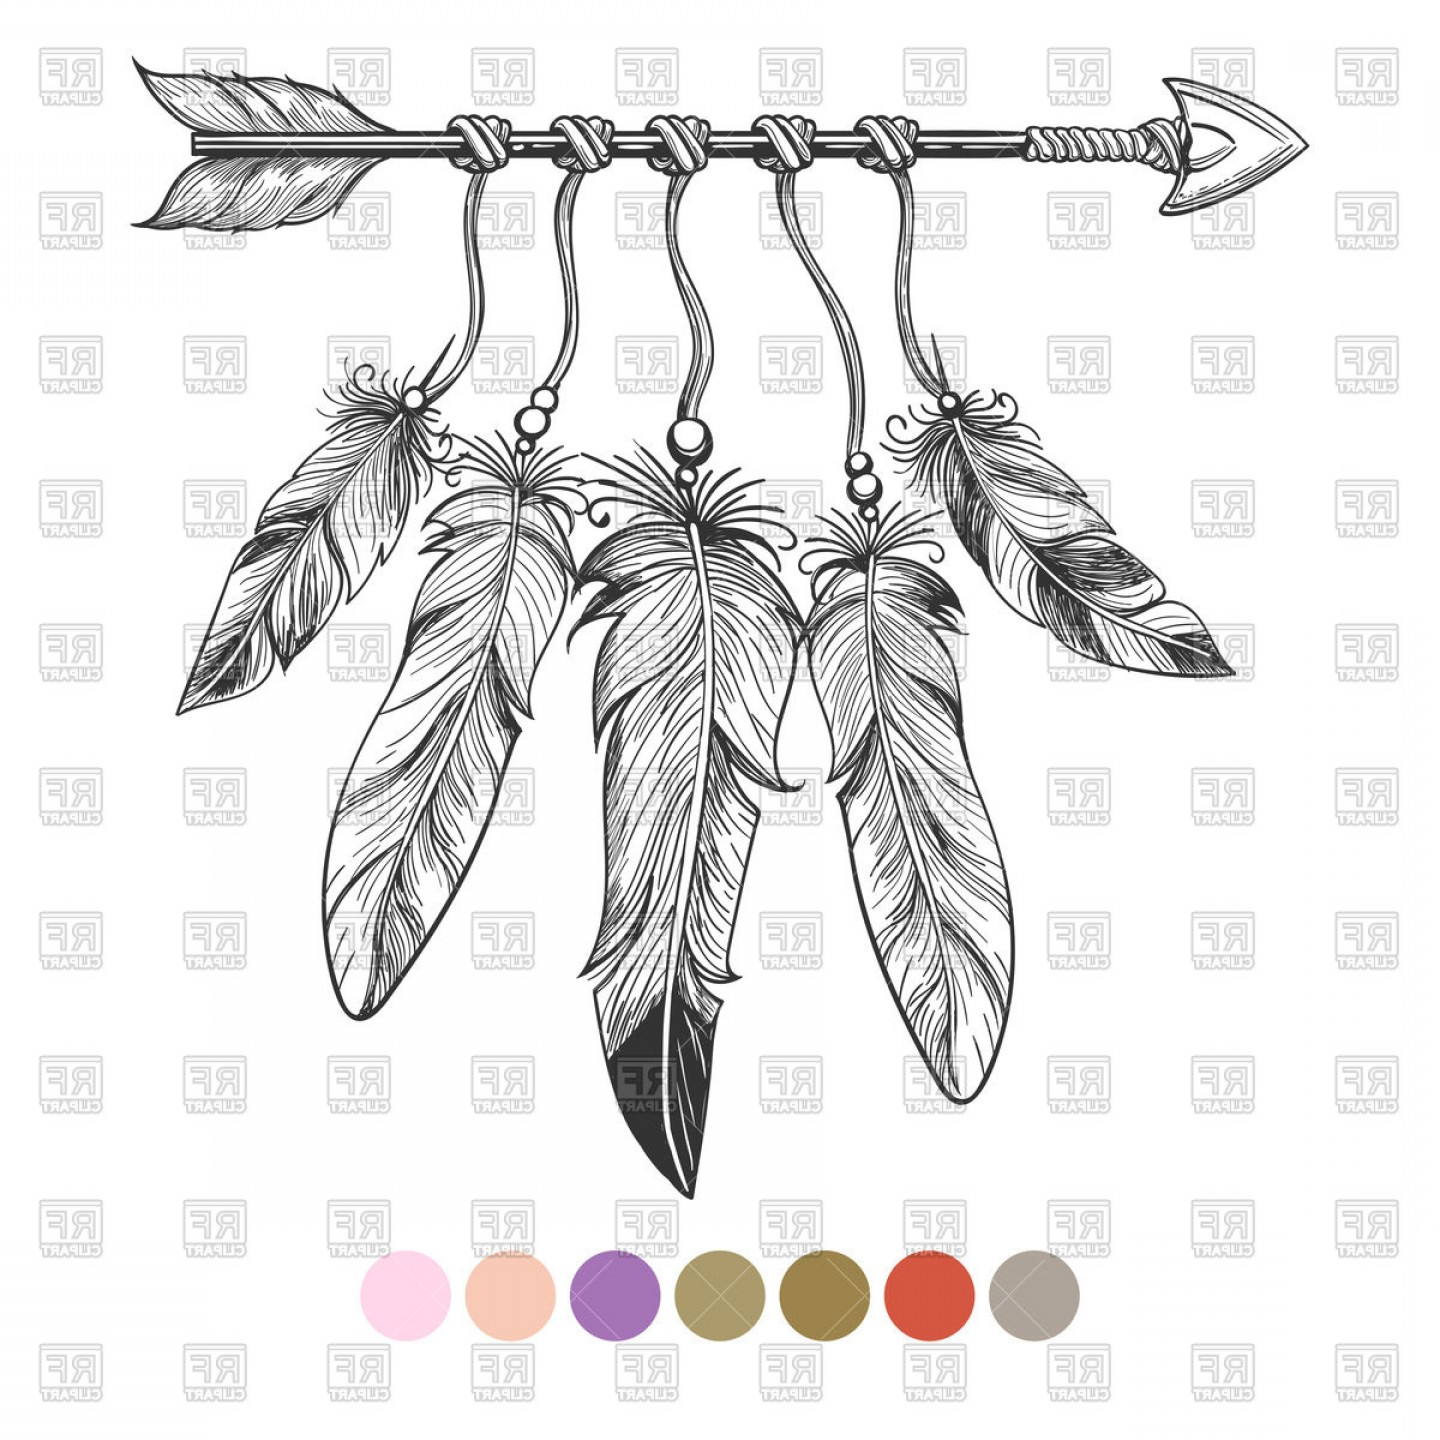 Hand drawn vector clipart black and white download Hand Drawn Boho Element Arrow And Feathers Vector Clipart | HandandBeak black and white download